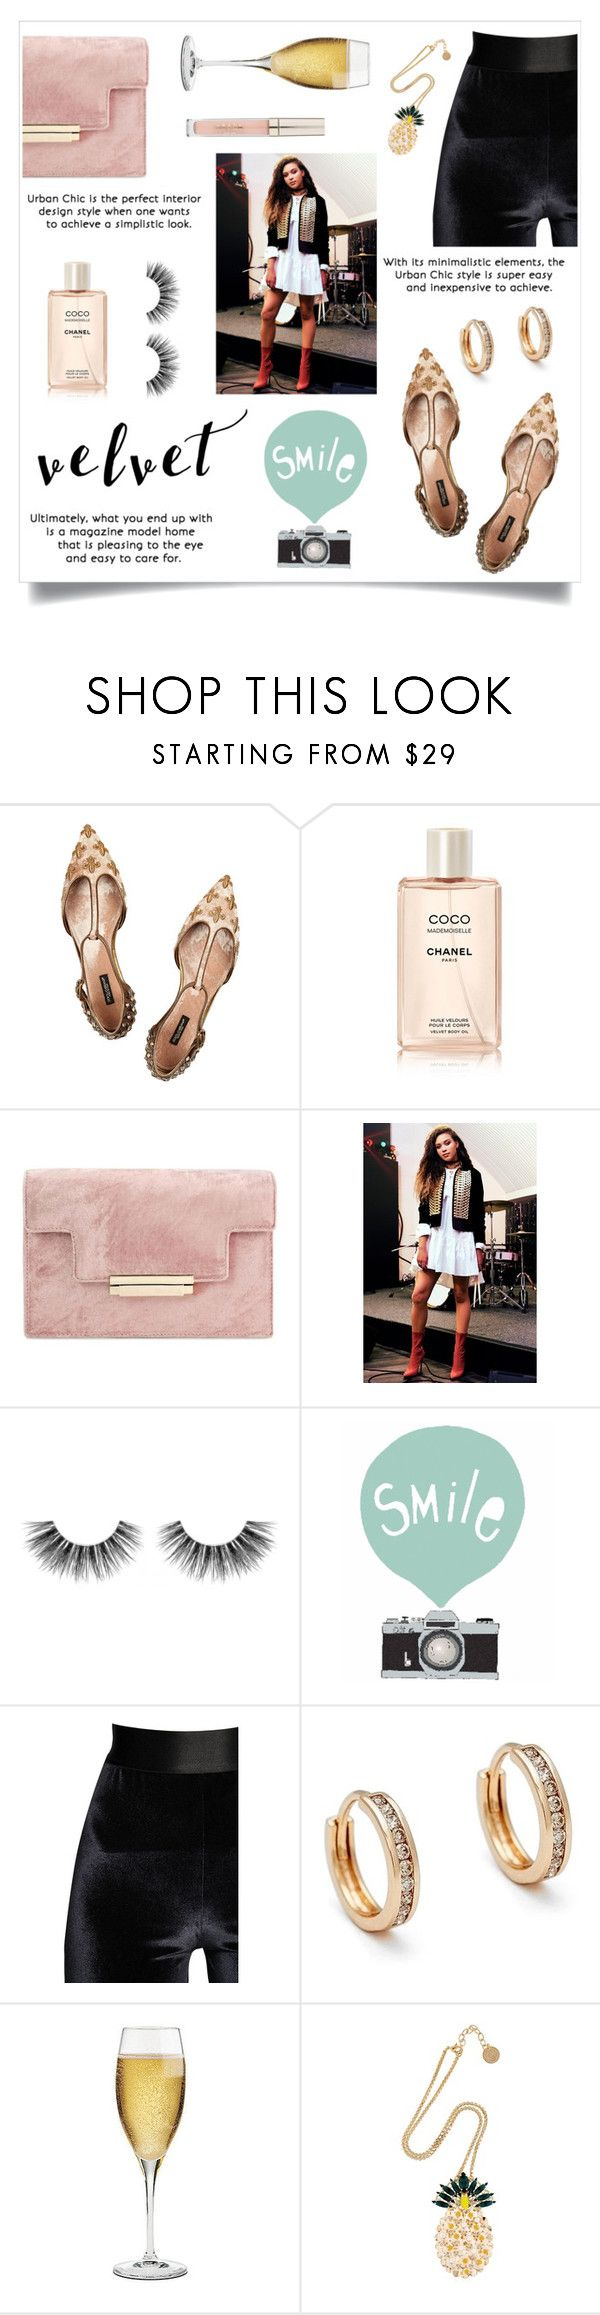 """""""Velvet"""" by linmari ❤ liked on Polyvore featuring Dolce&Gabbana, Chanel, Boohoo, Velour Lashes, Seventy Tree, Faith Connexion, Anna Sheffield, Riedel, Anton Heunis and Stila"""